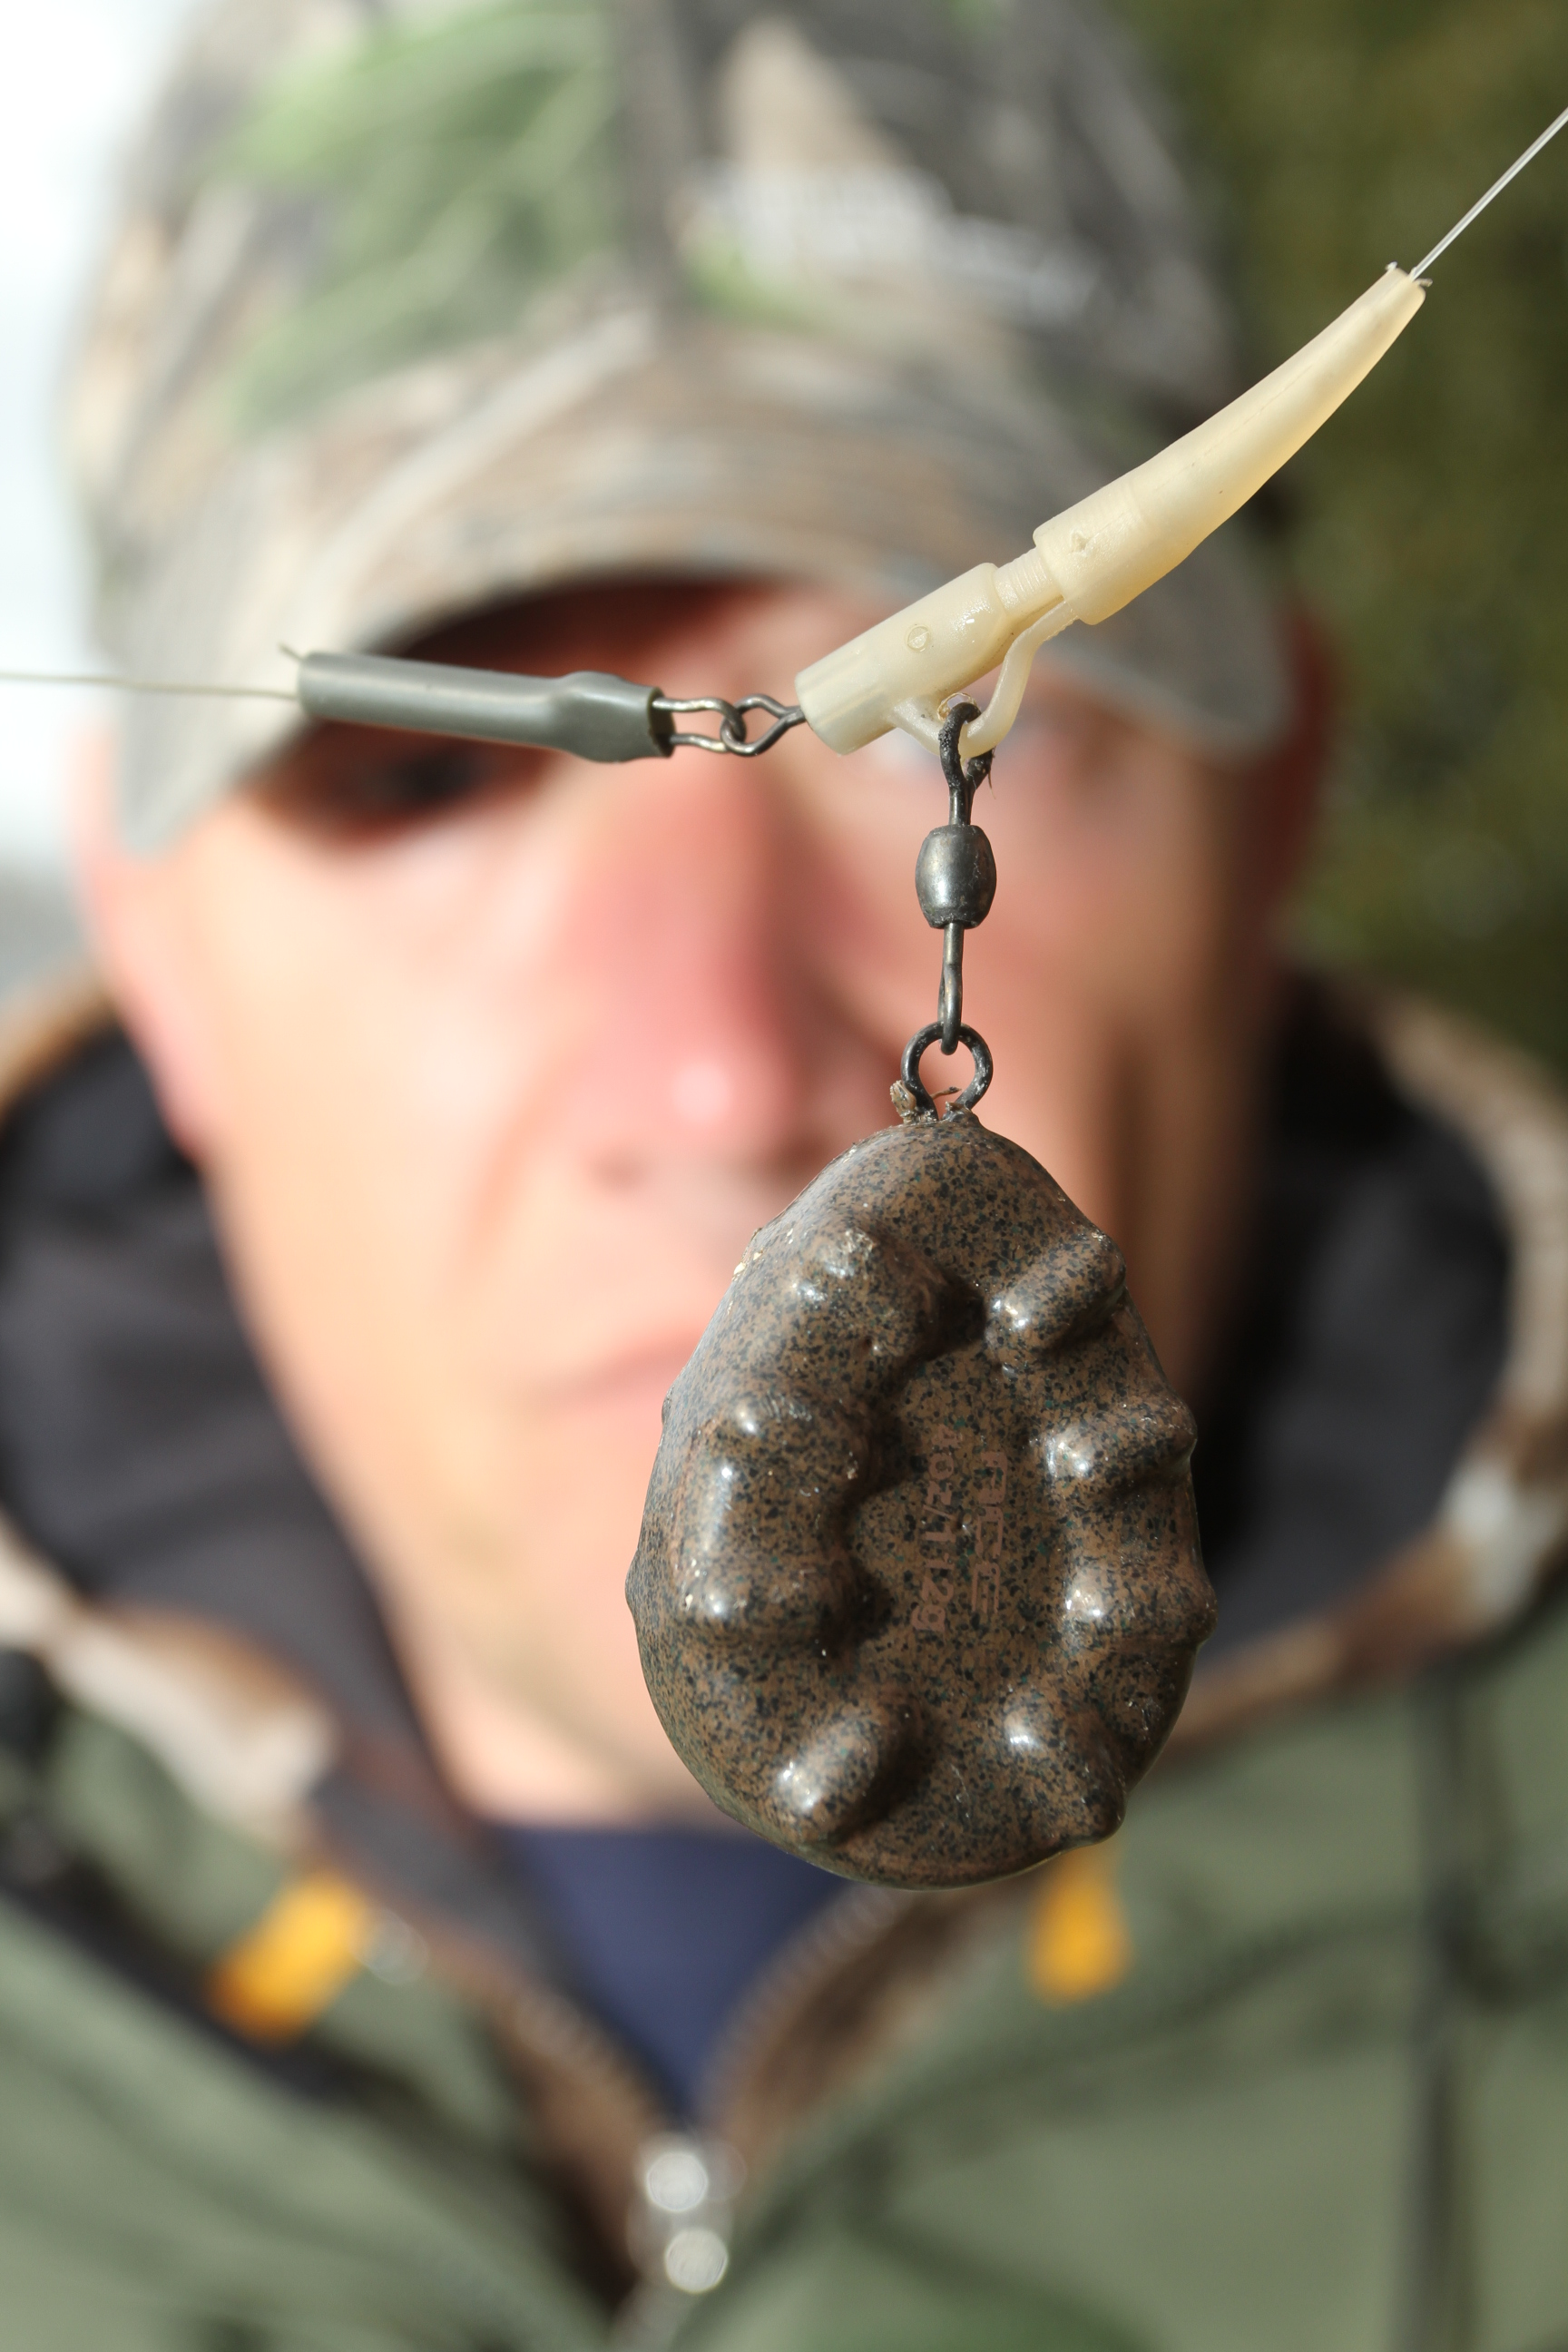 Minimum 4oz leads, and most of the time 6oz, for better hooking potential